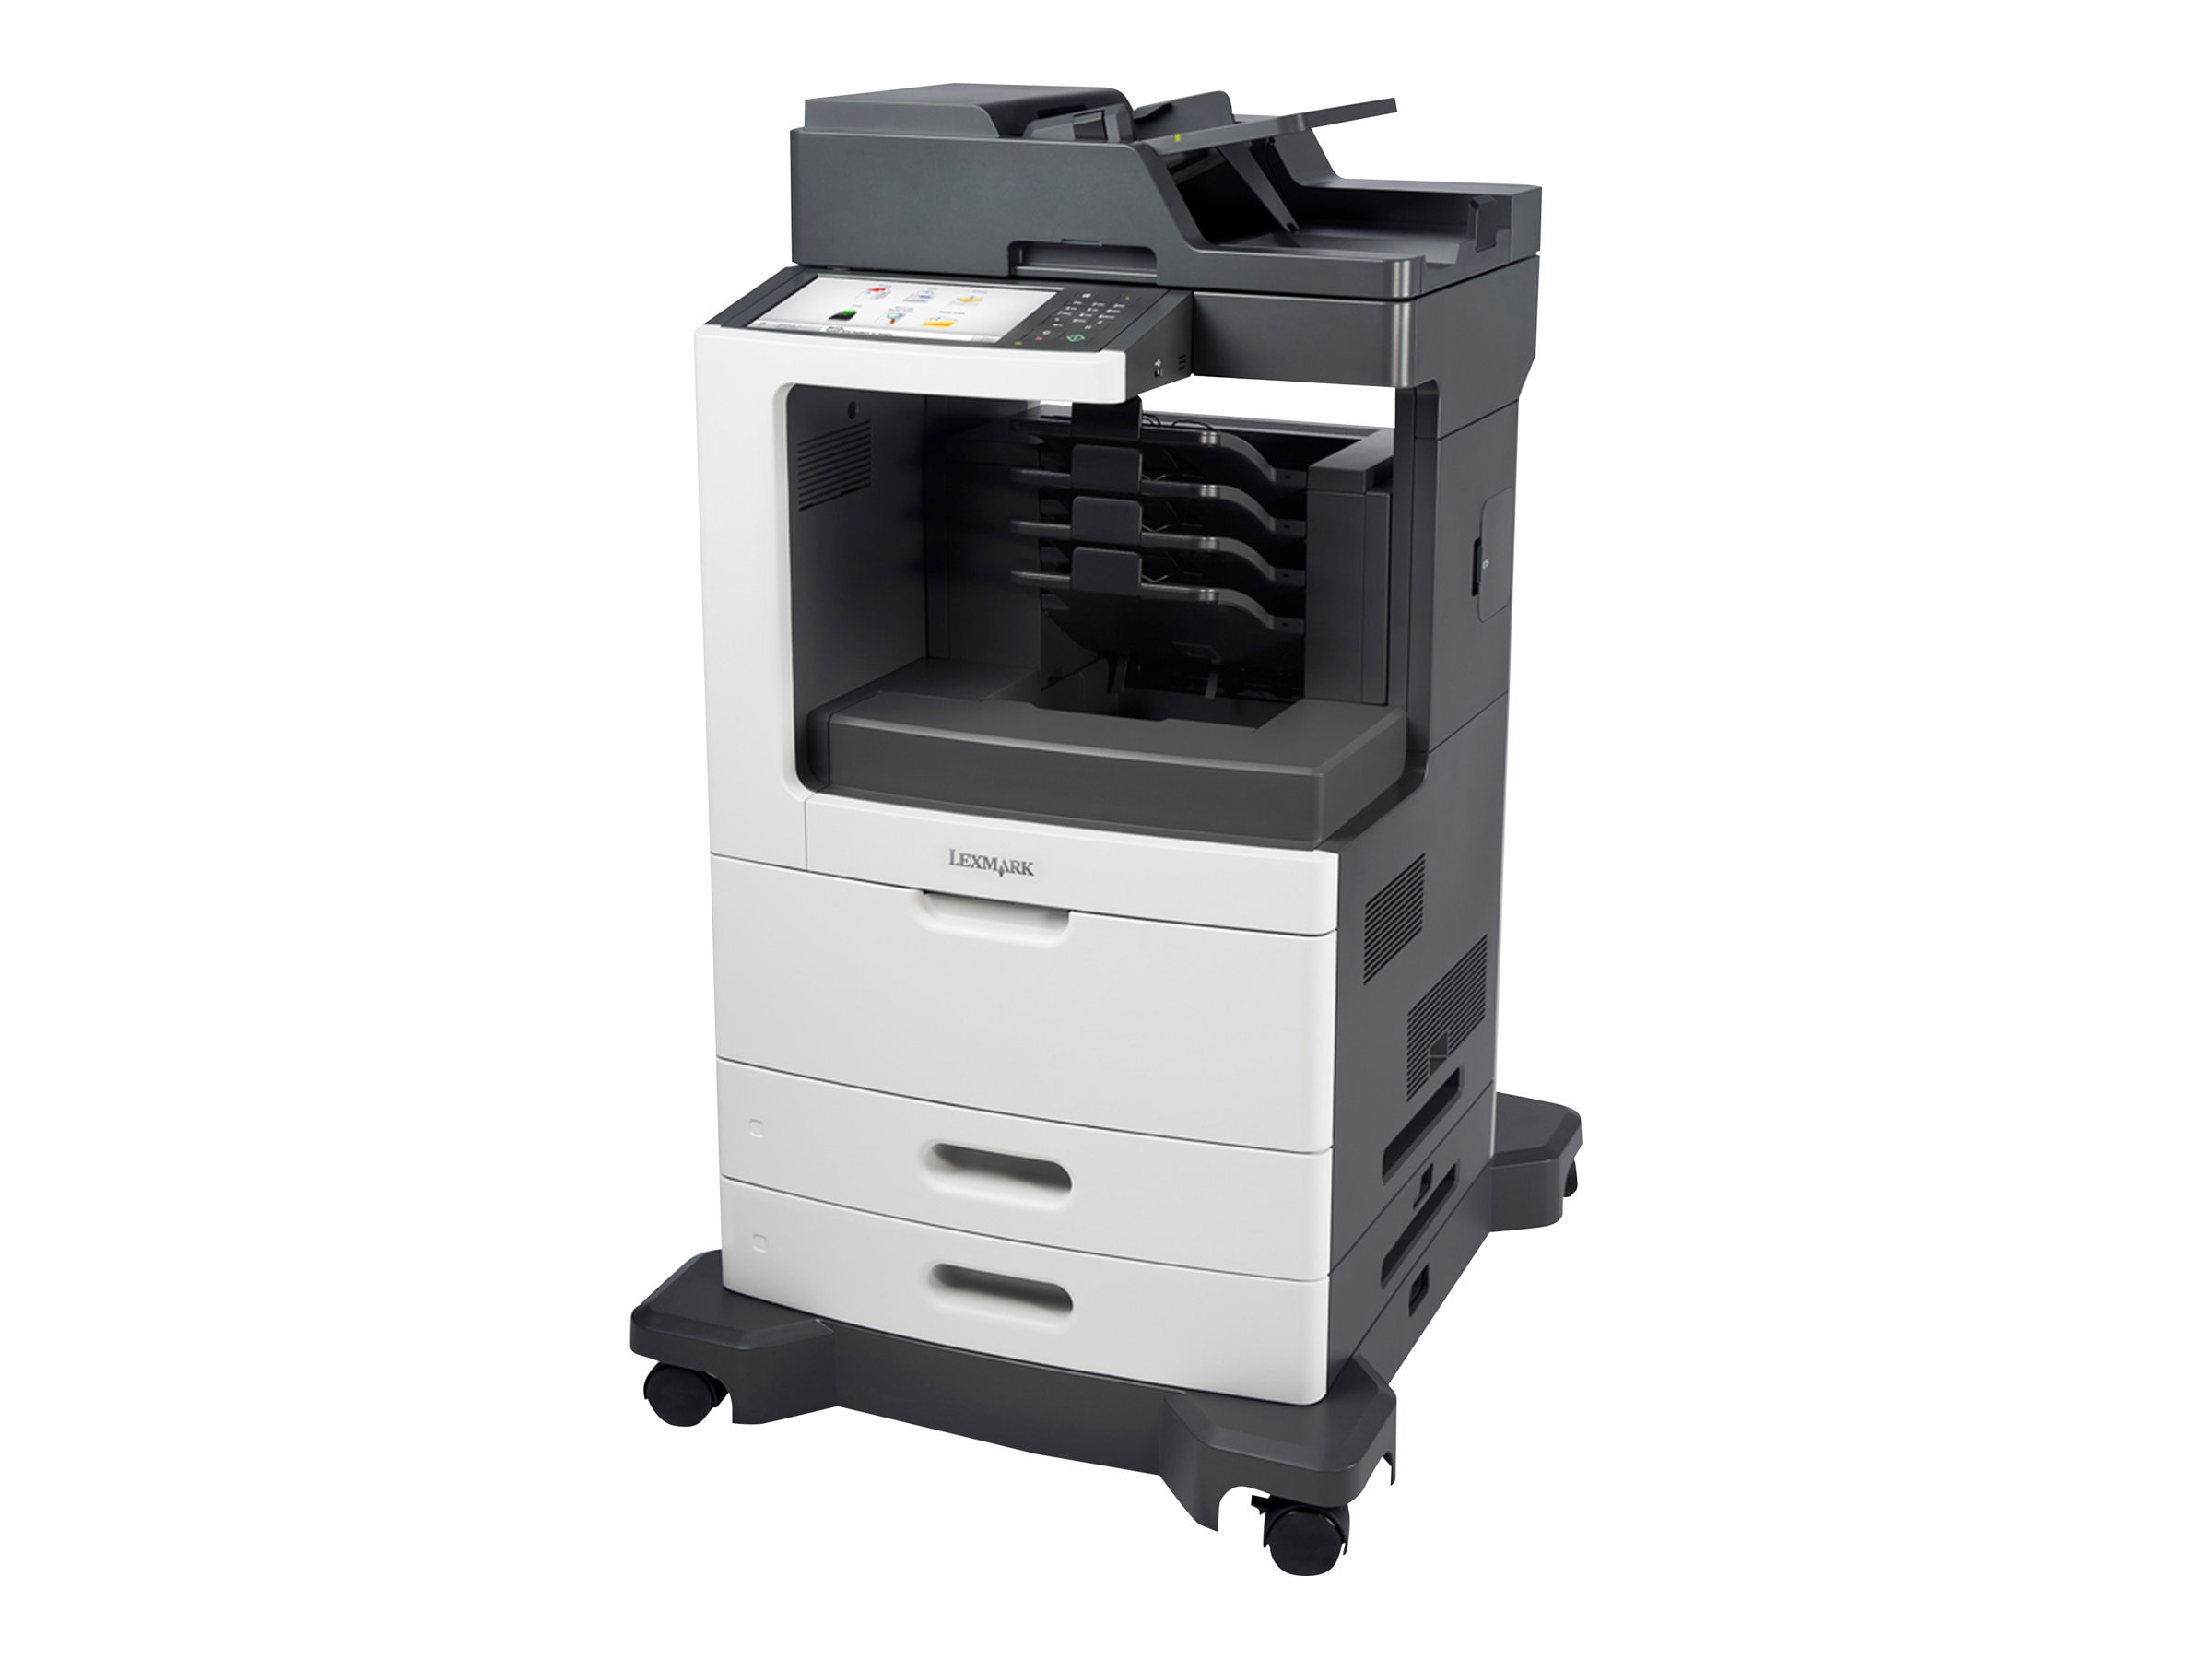 Lexmark MX810dme Monochrome Laser Multifunction Printer